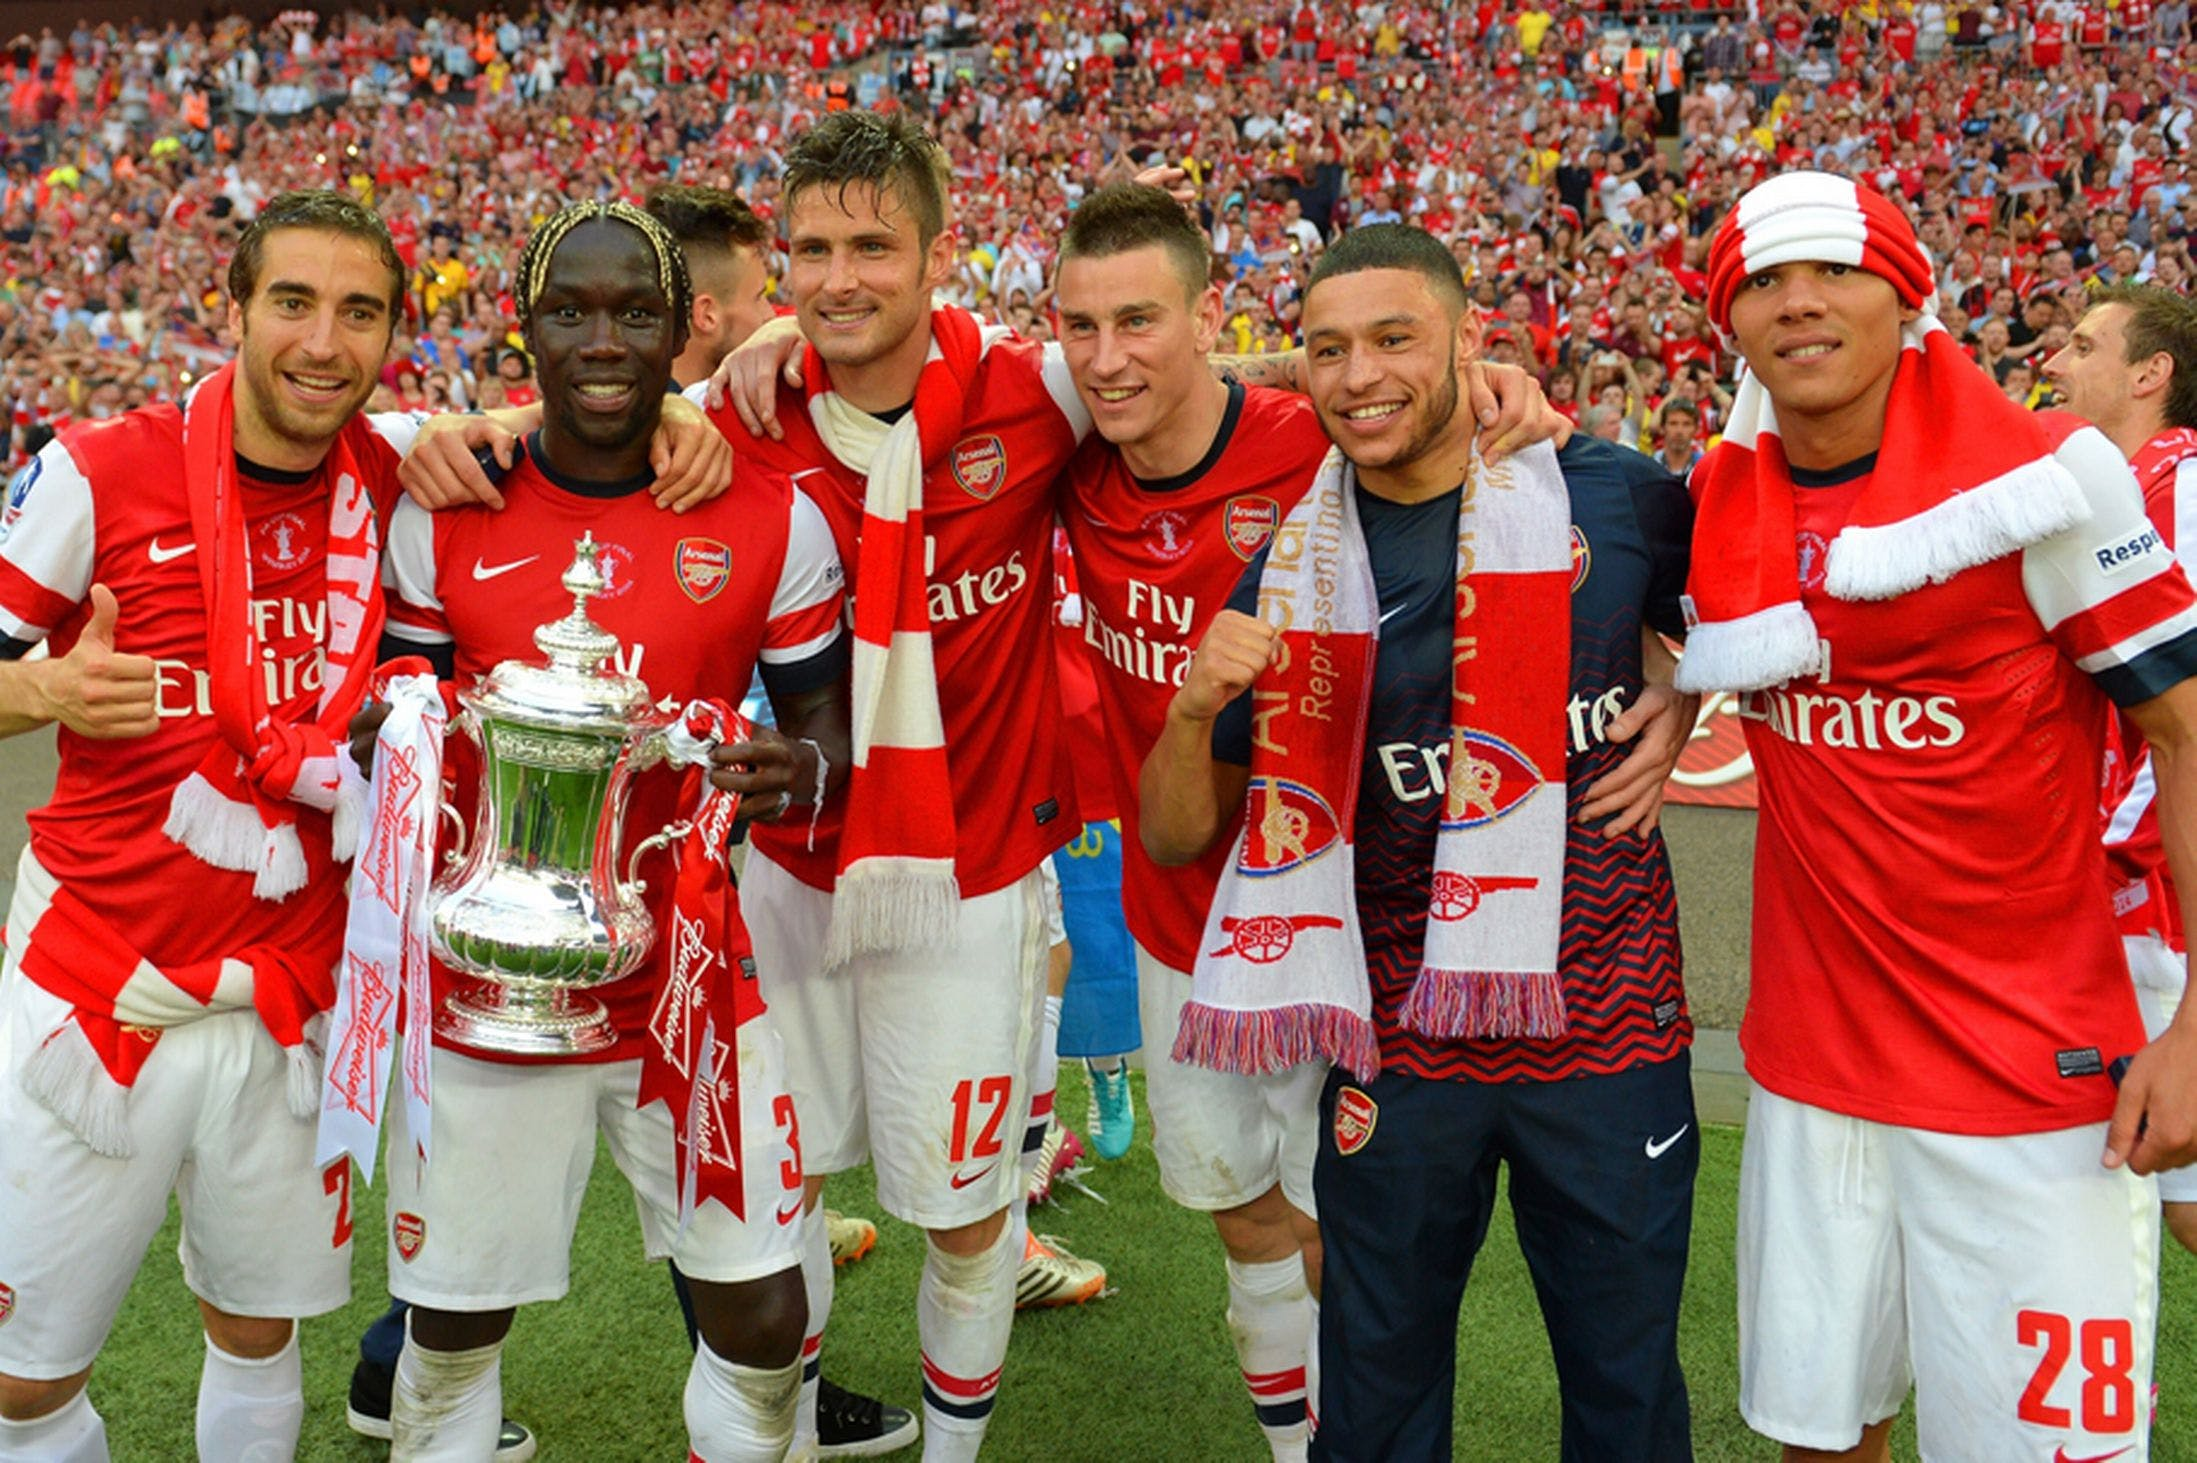 Arsenal are the current holders of the trophy, which looks set to be rebranded to the 'Emirates FA Cup'